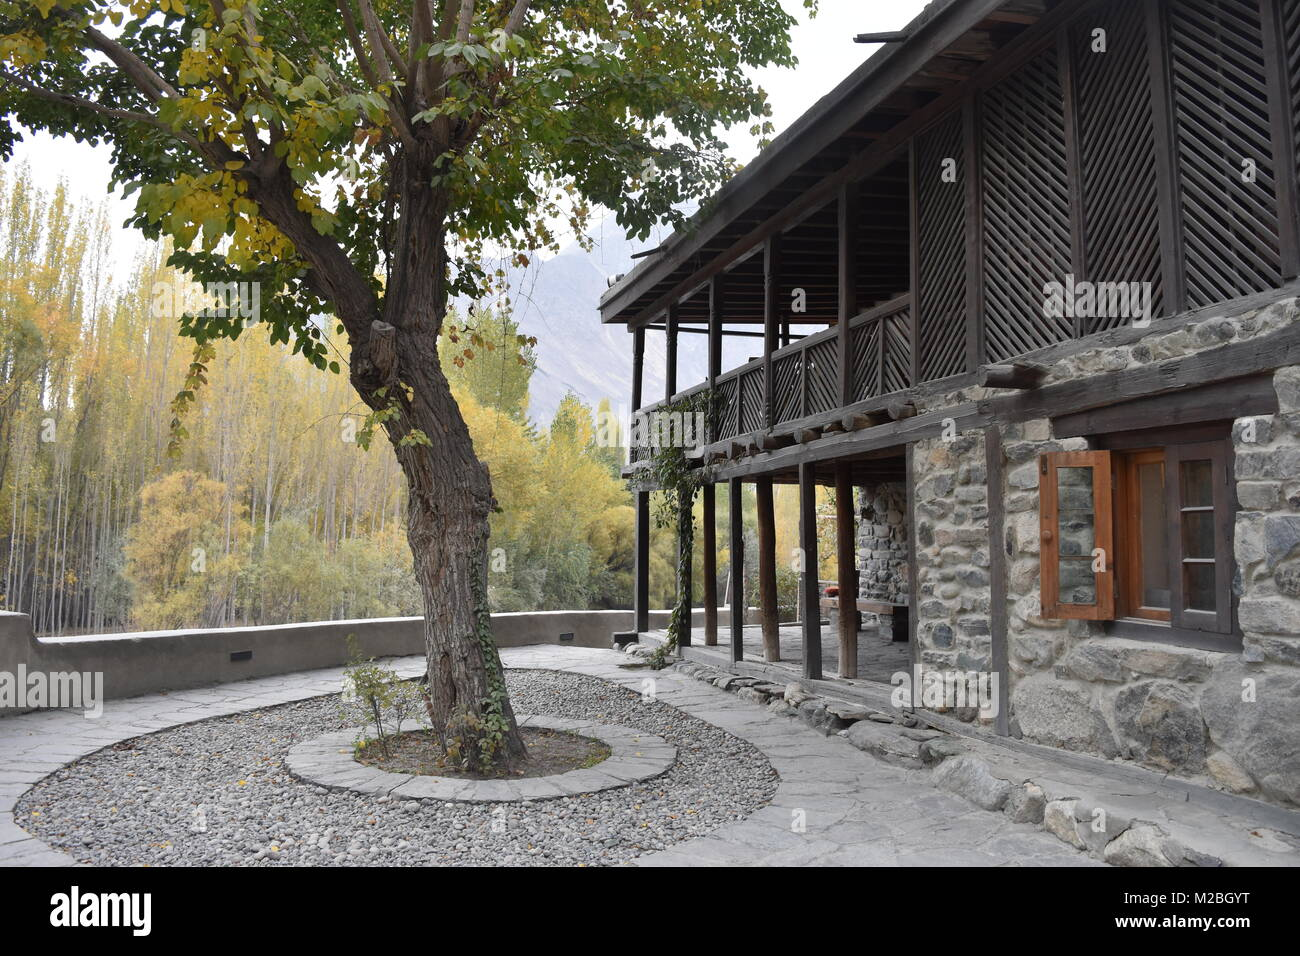 Shigar Fort - Stock Image